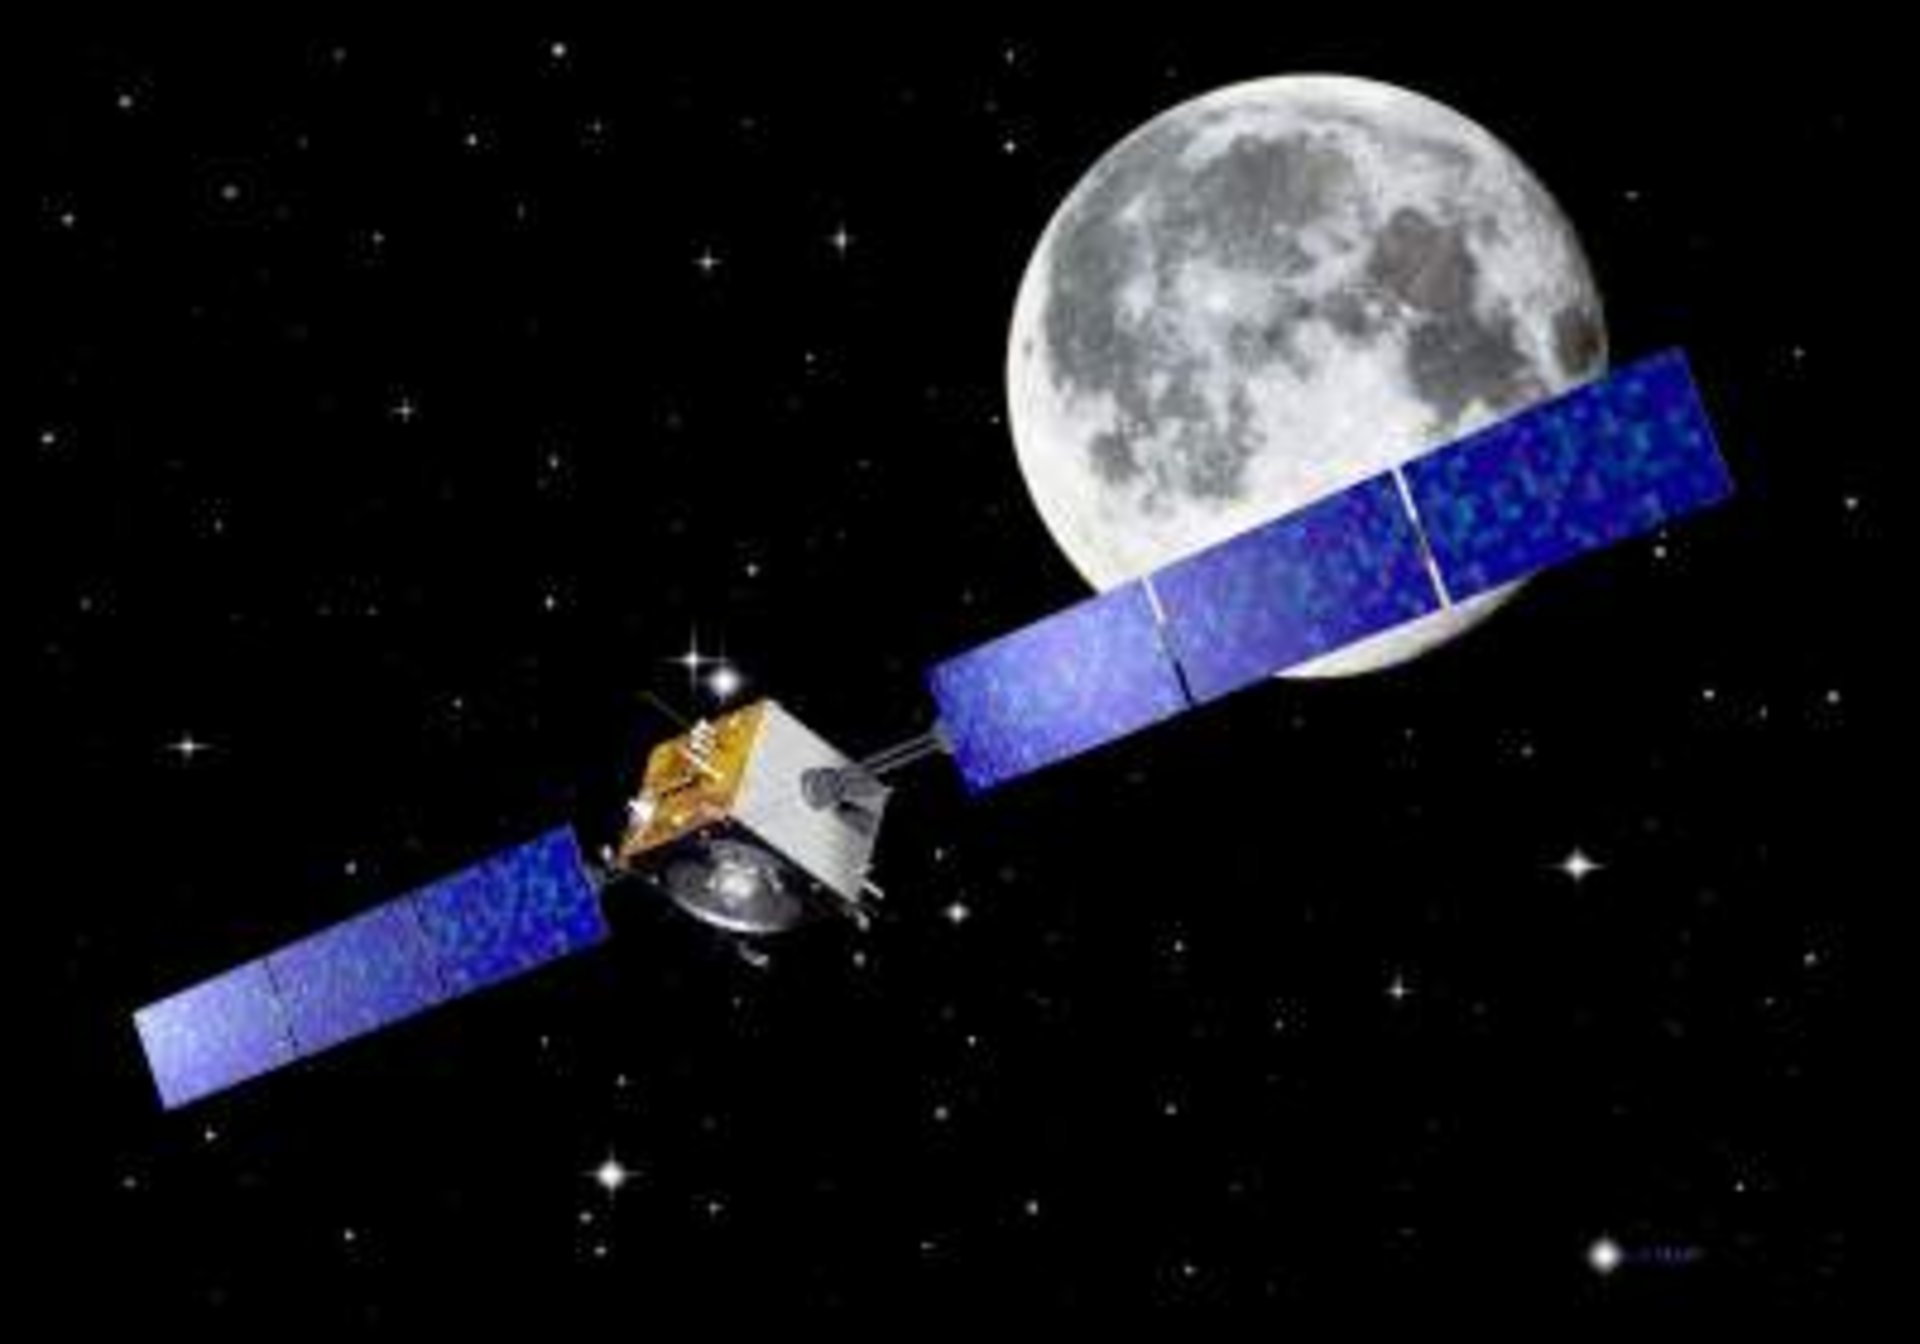 Expanding cooperation: German ground station tracks ESA Moon